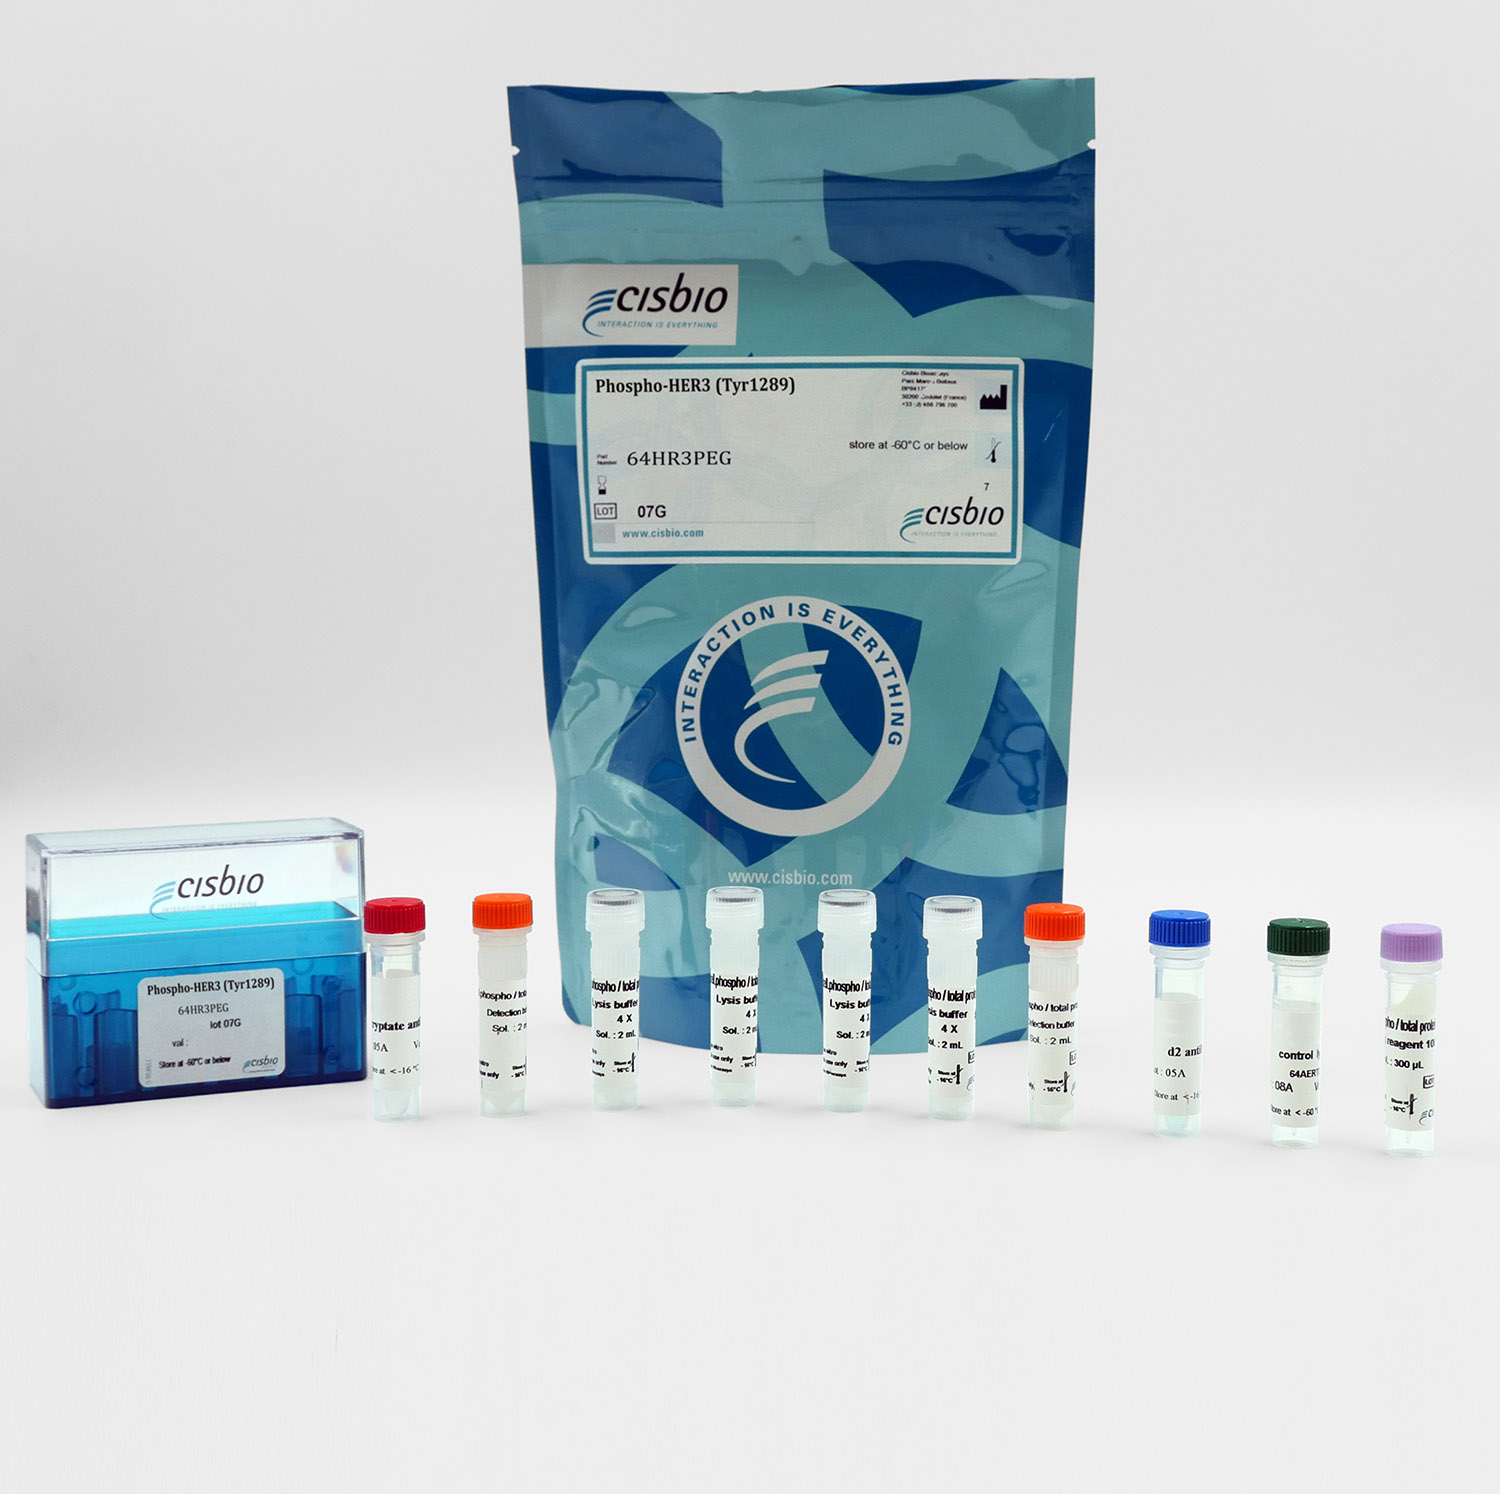 Phospho-HER3 (Tyr1289) cellular kit